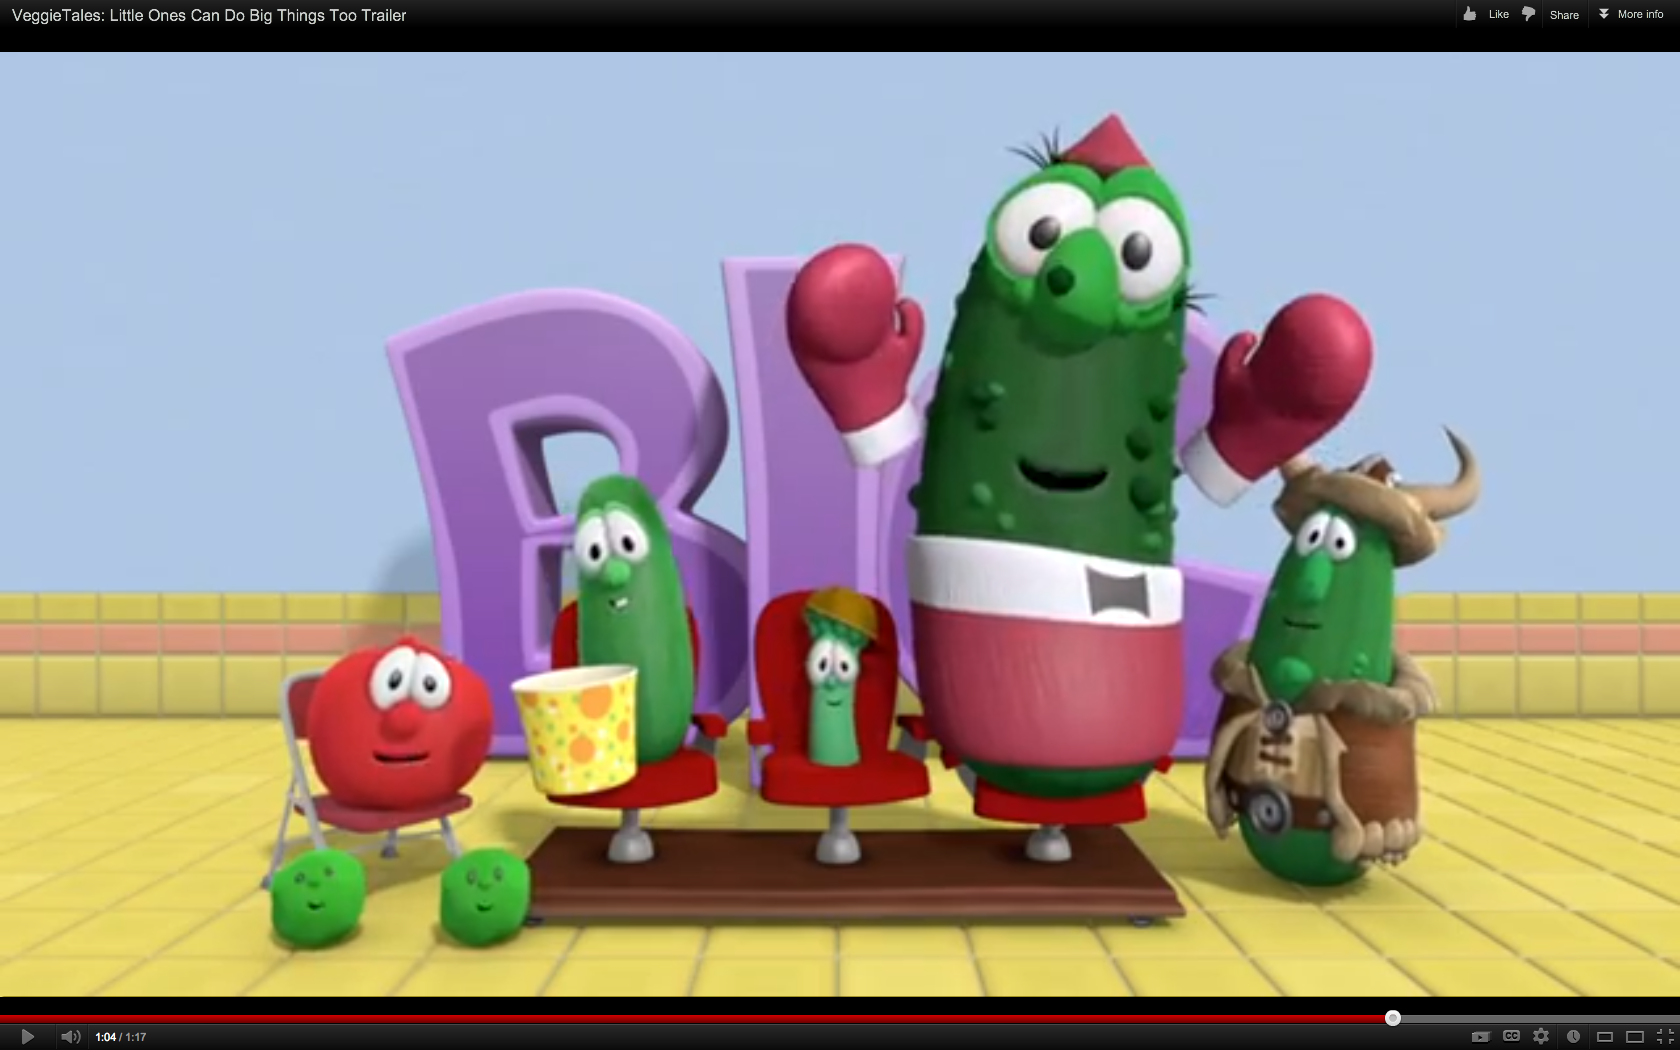 Goliath | VeggieTales Wiki | FANDOM powered by Wikia